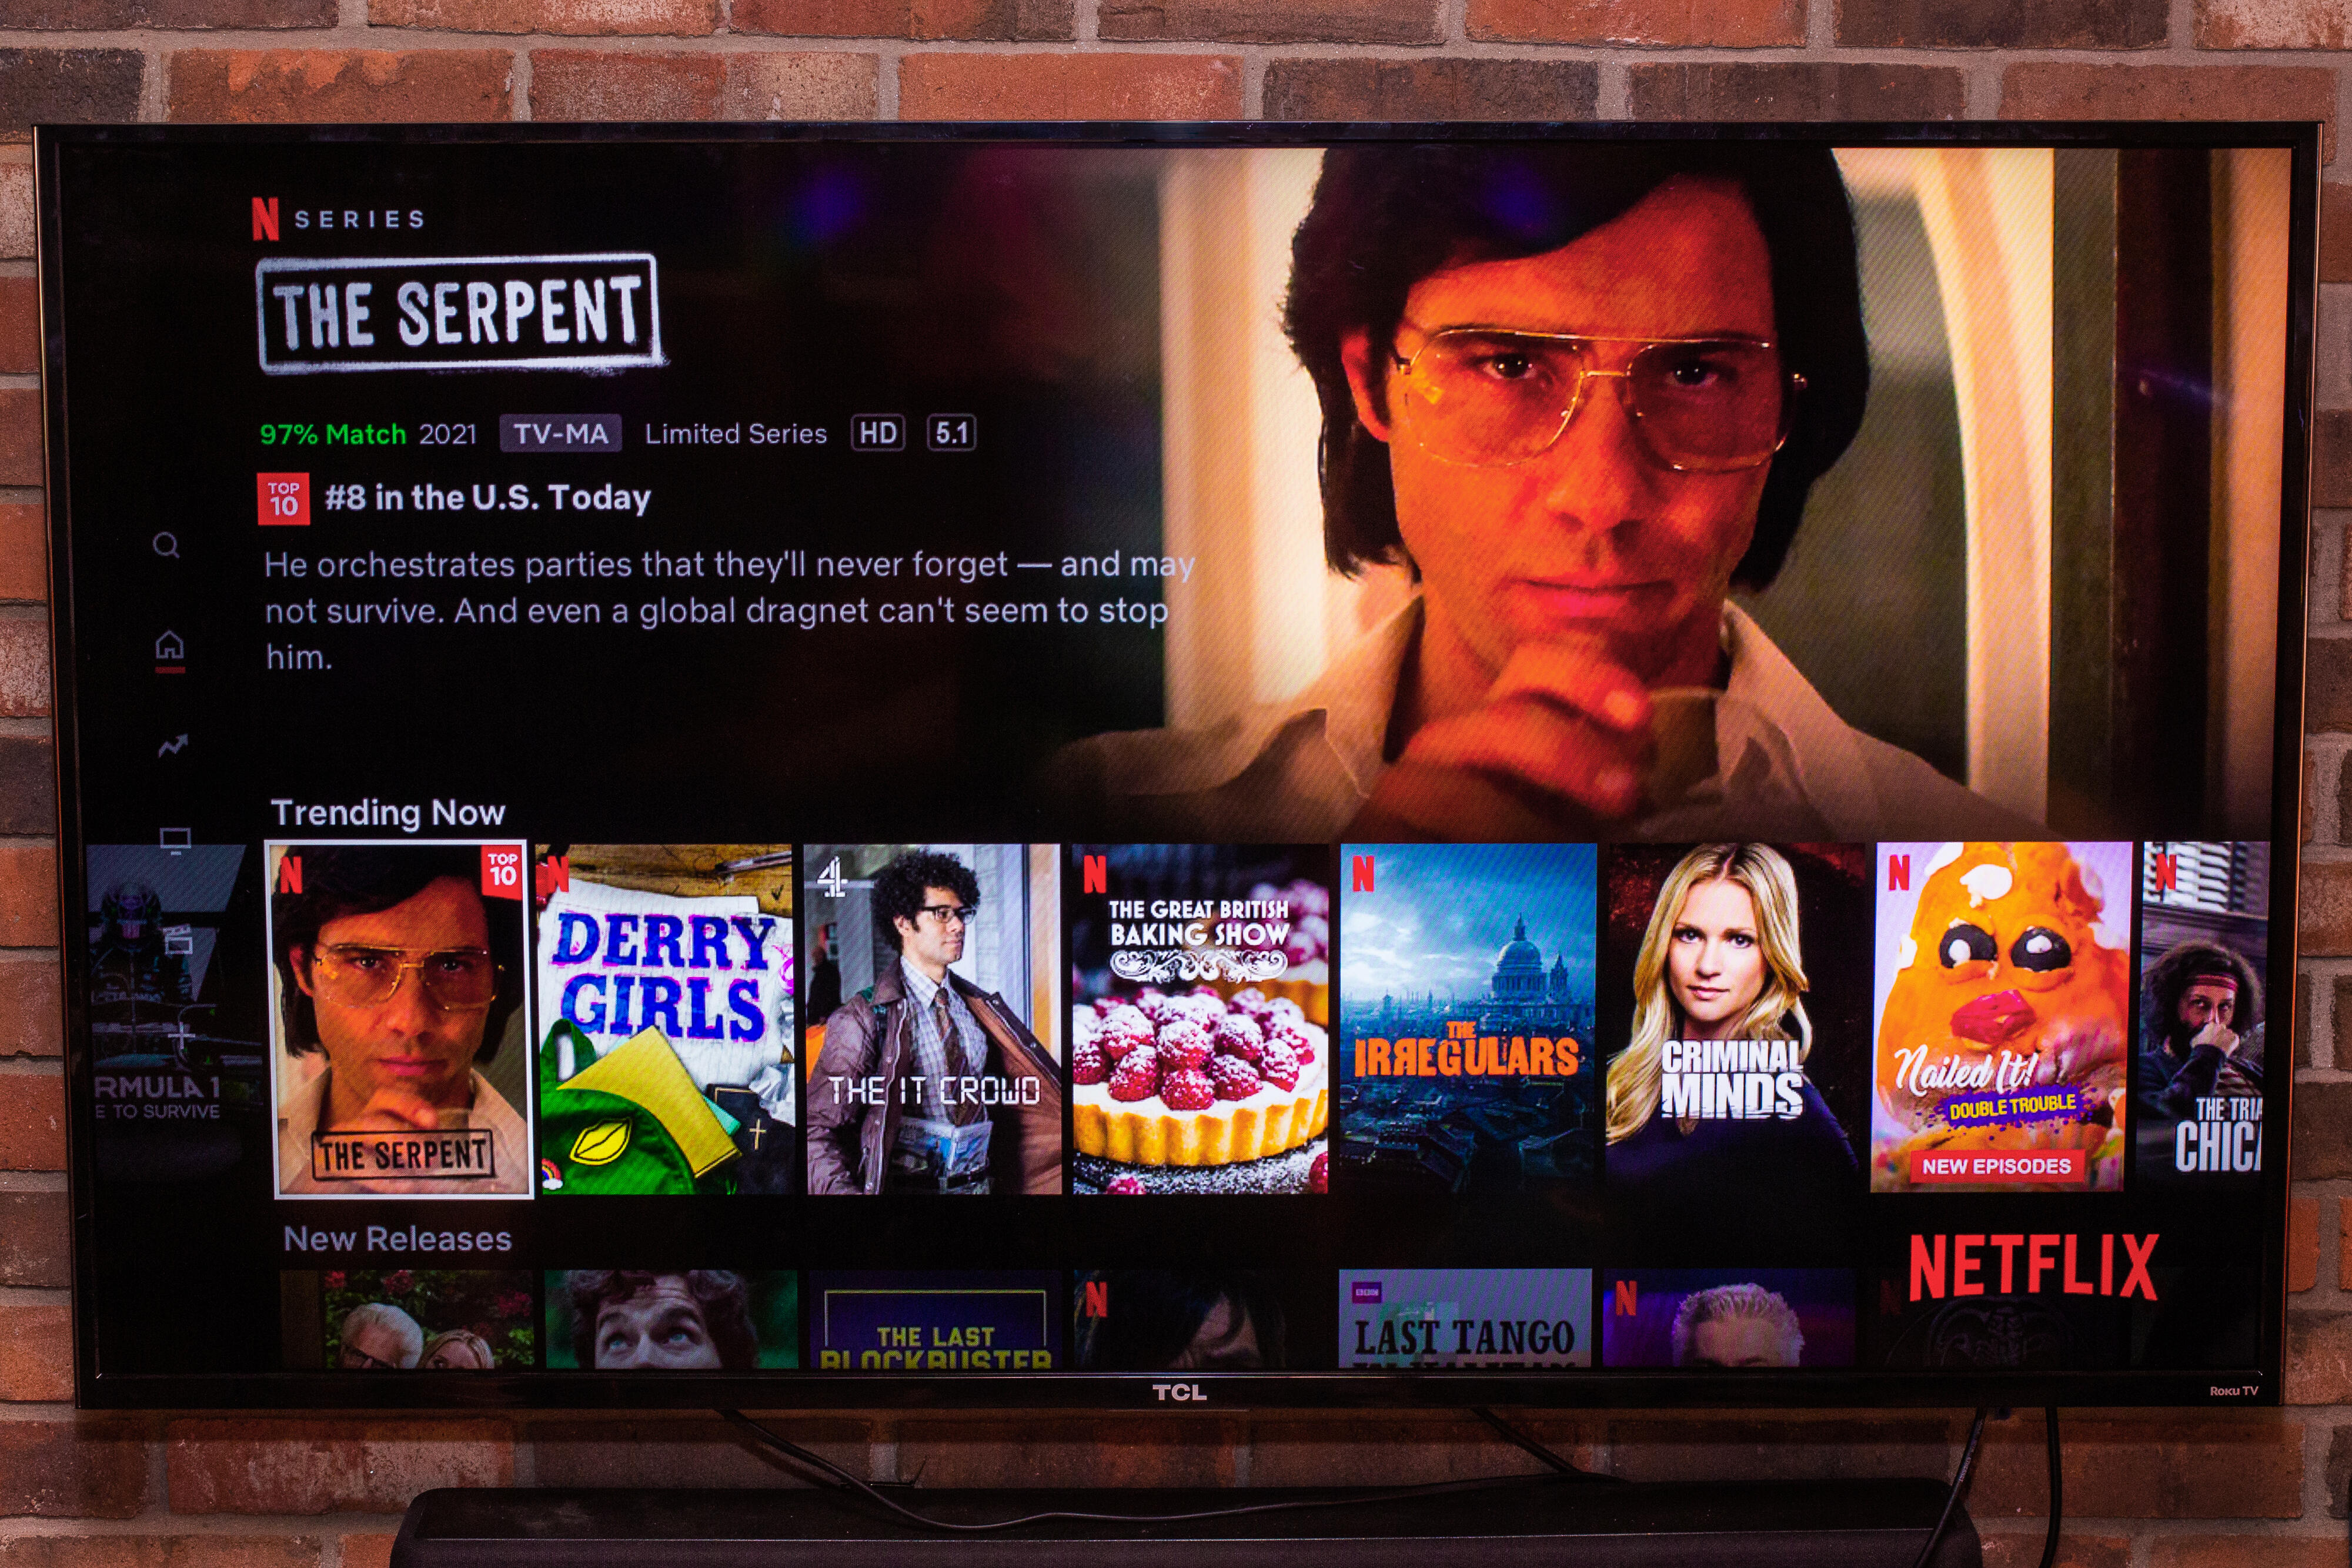 003-how-to-watch-netflix-on-your-tv-2021